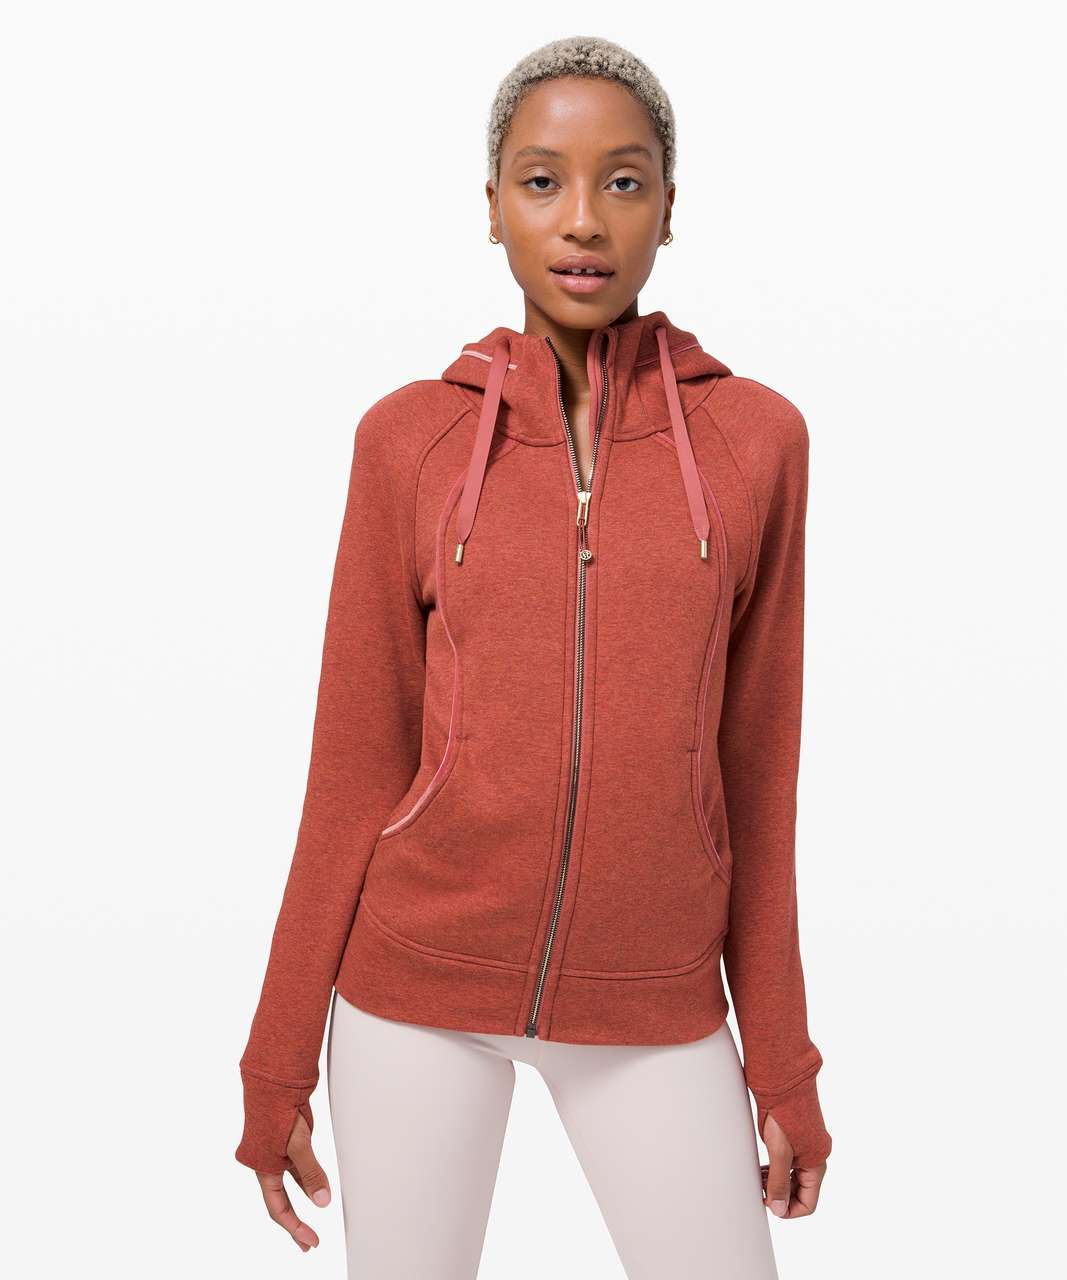 Lululemon Scuba Hoodie *Plush - Heathered Soft Cranberry / Soft Cranberry